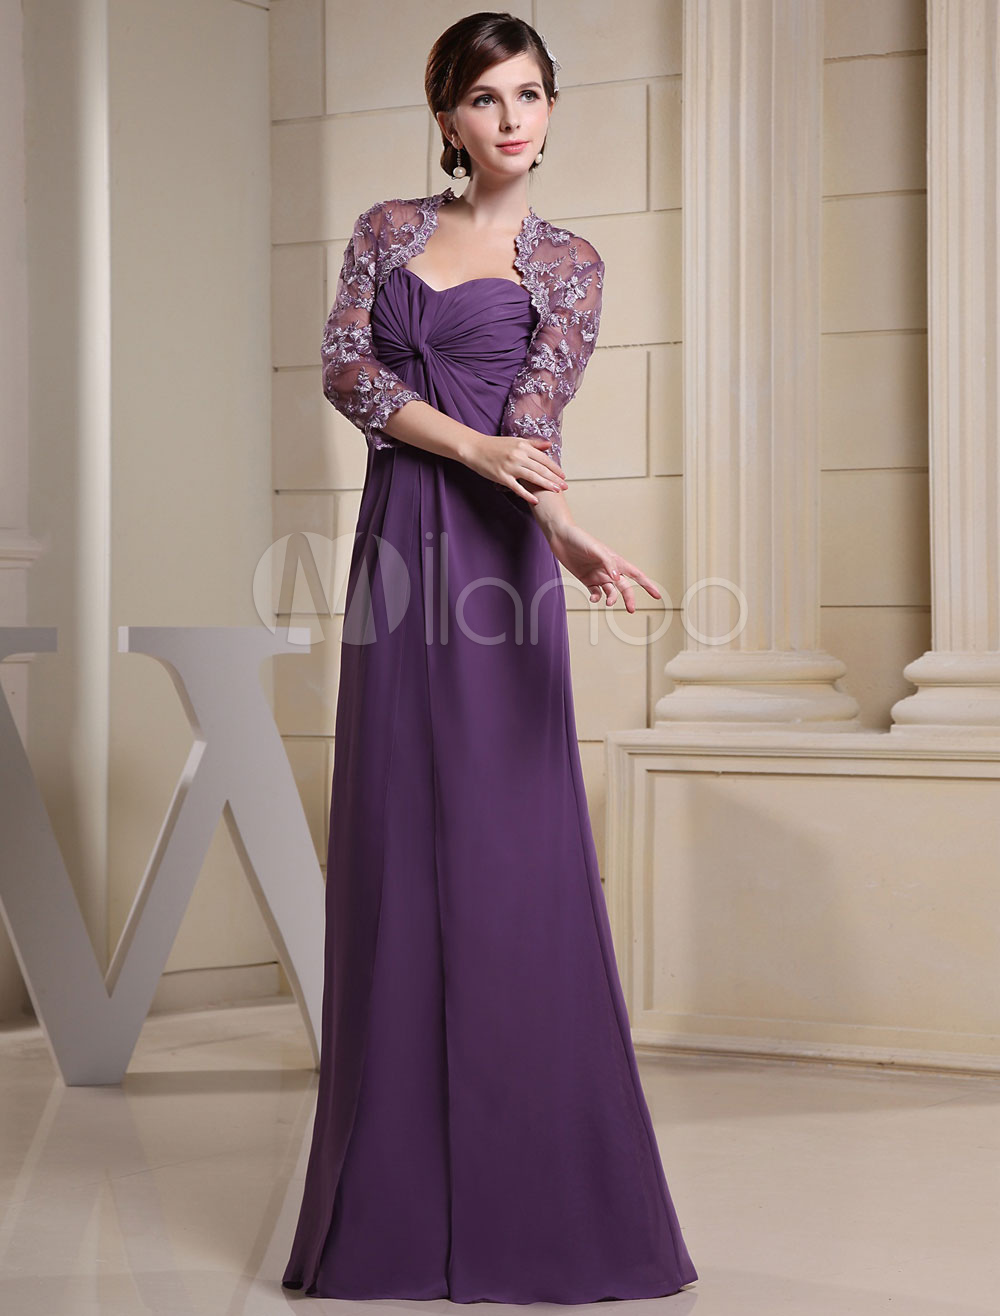 Twisted Sweetheart Chiffon Evening Dress with Lace Illusion Overcoat